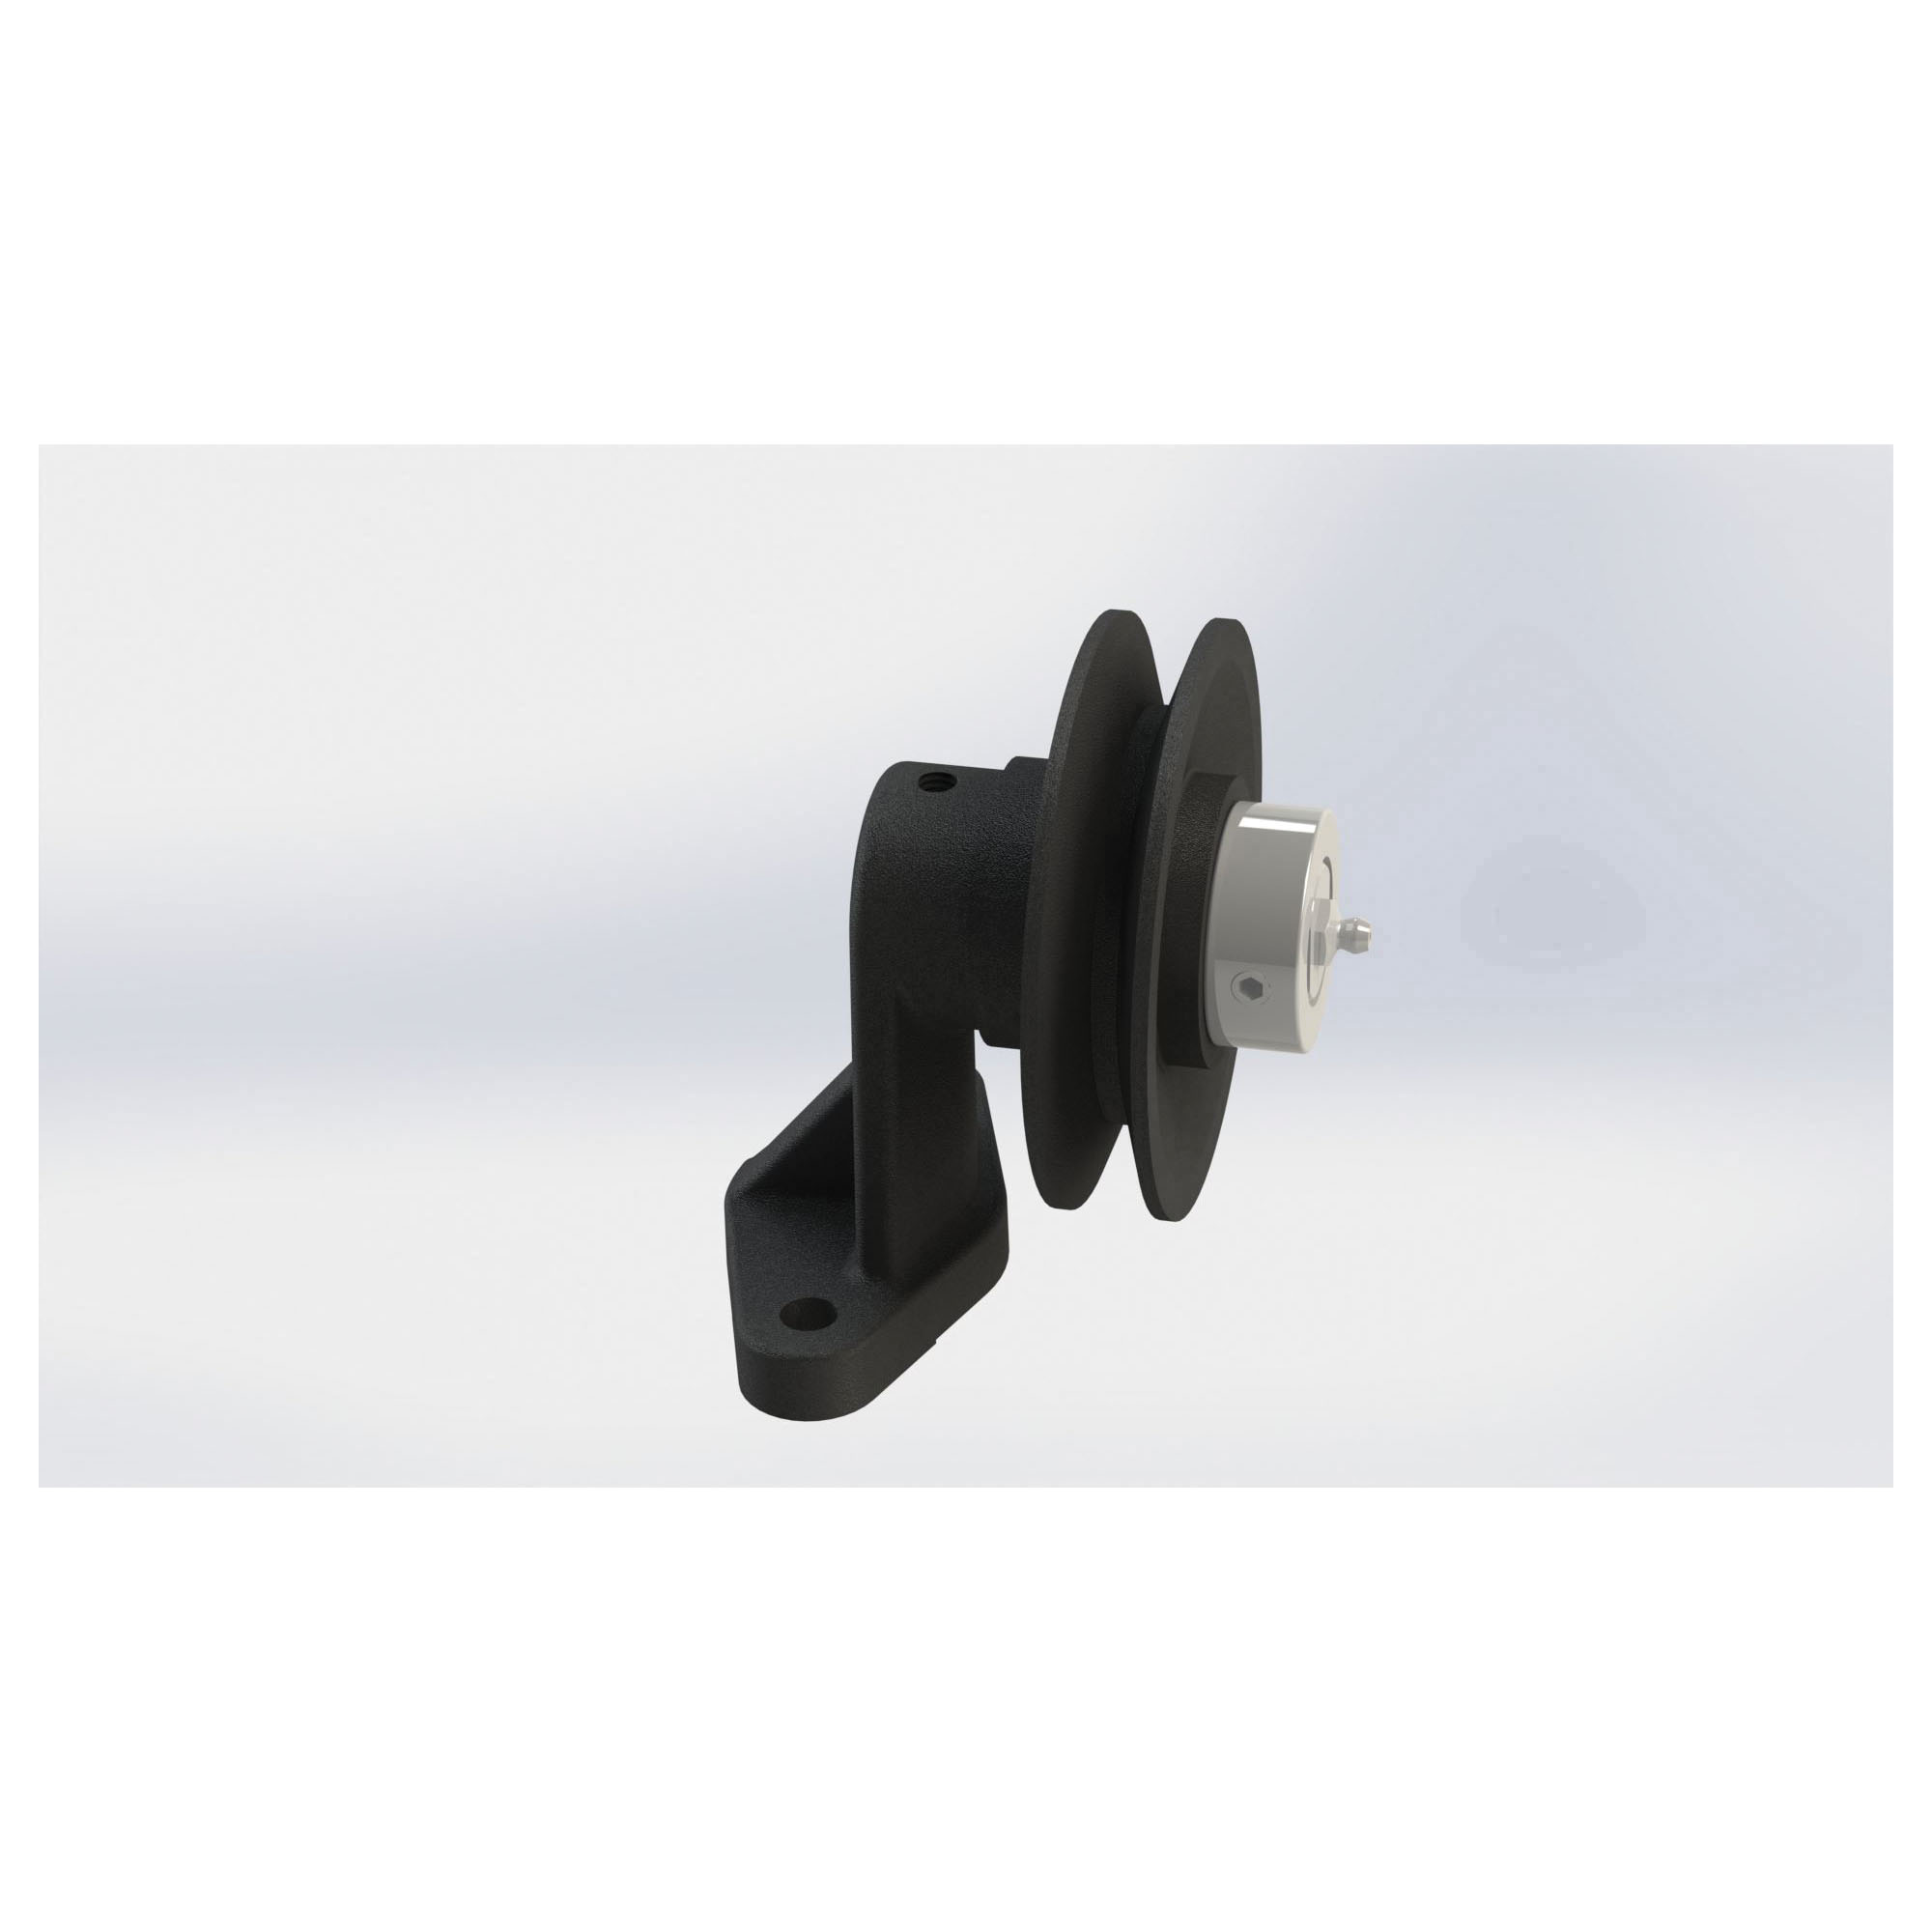 Brewer Universal Drive Tensioner RM-3/4-10